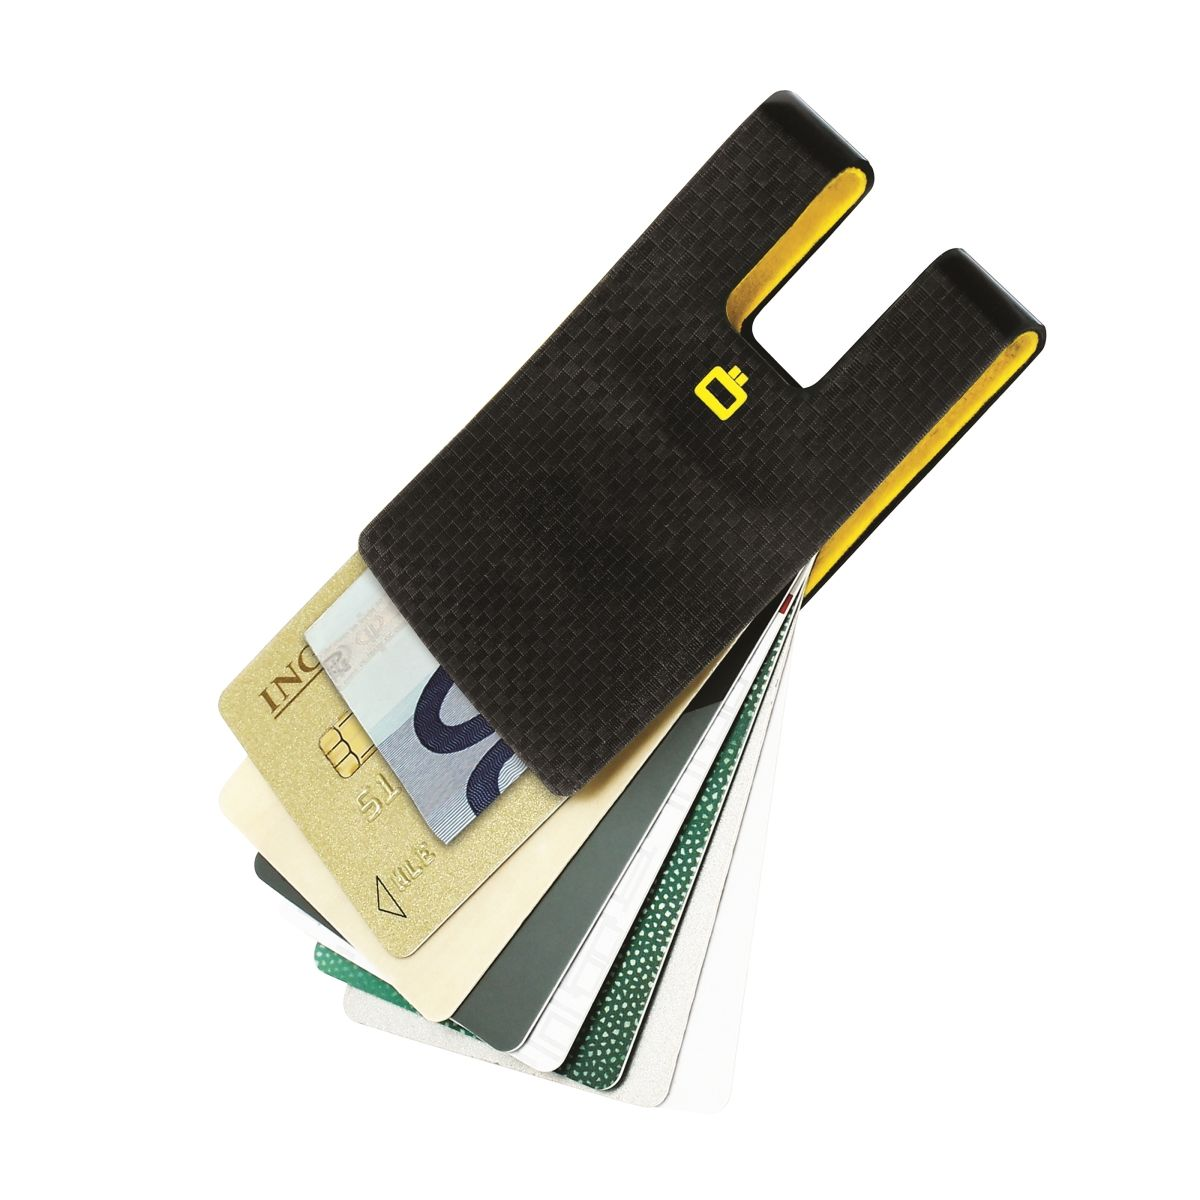 OGON Polycarbonate Card Clip - Carbon